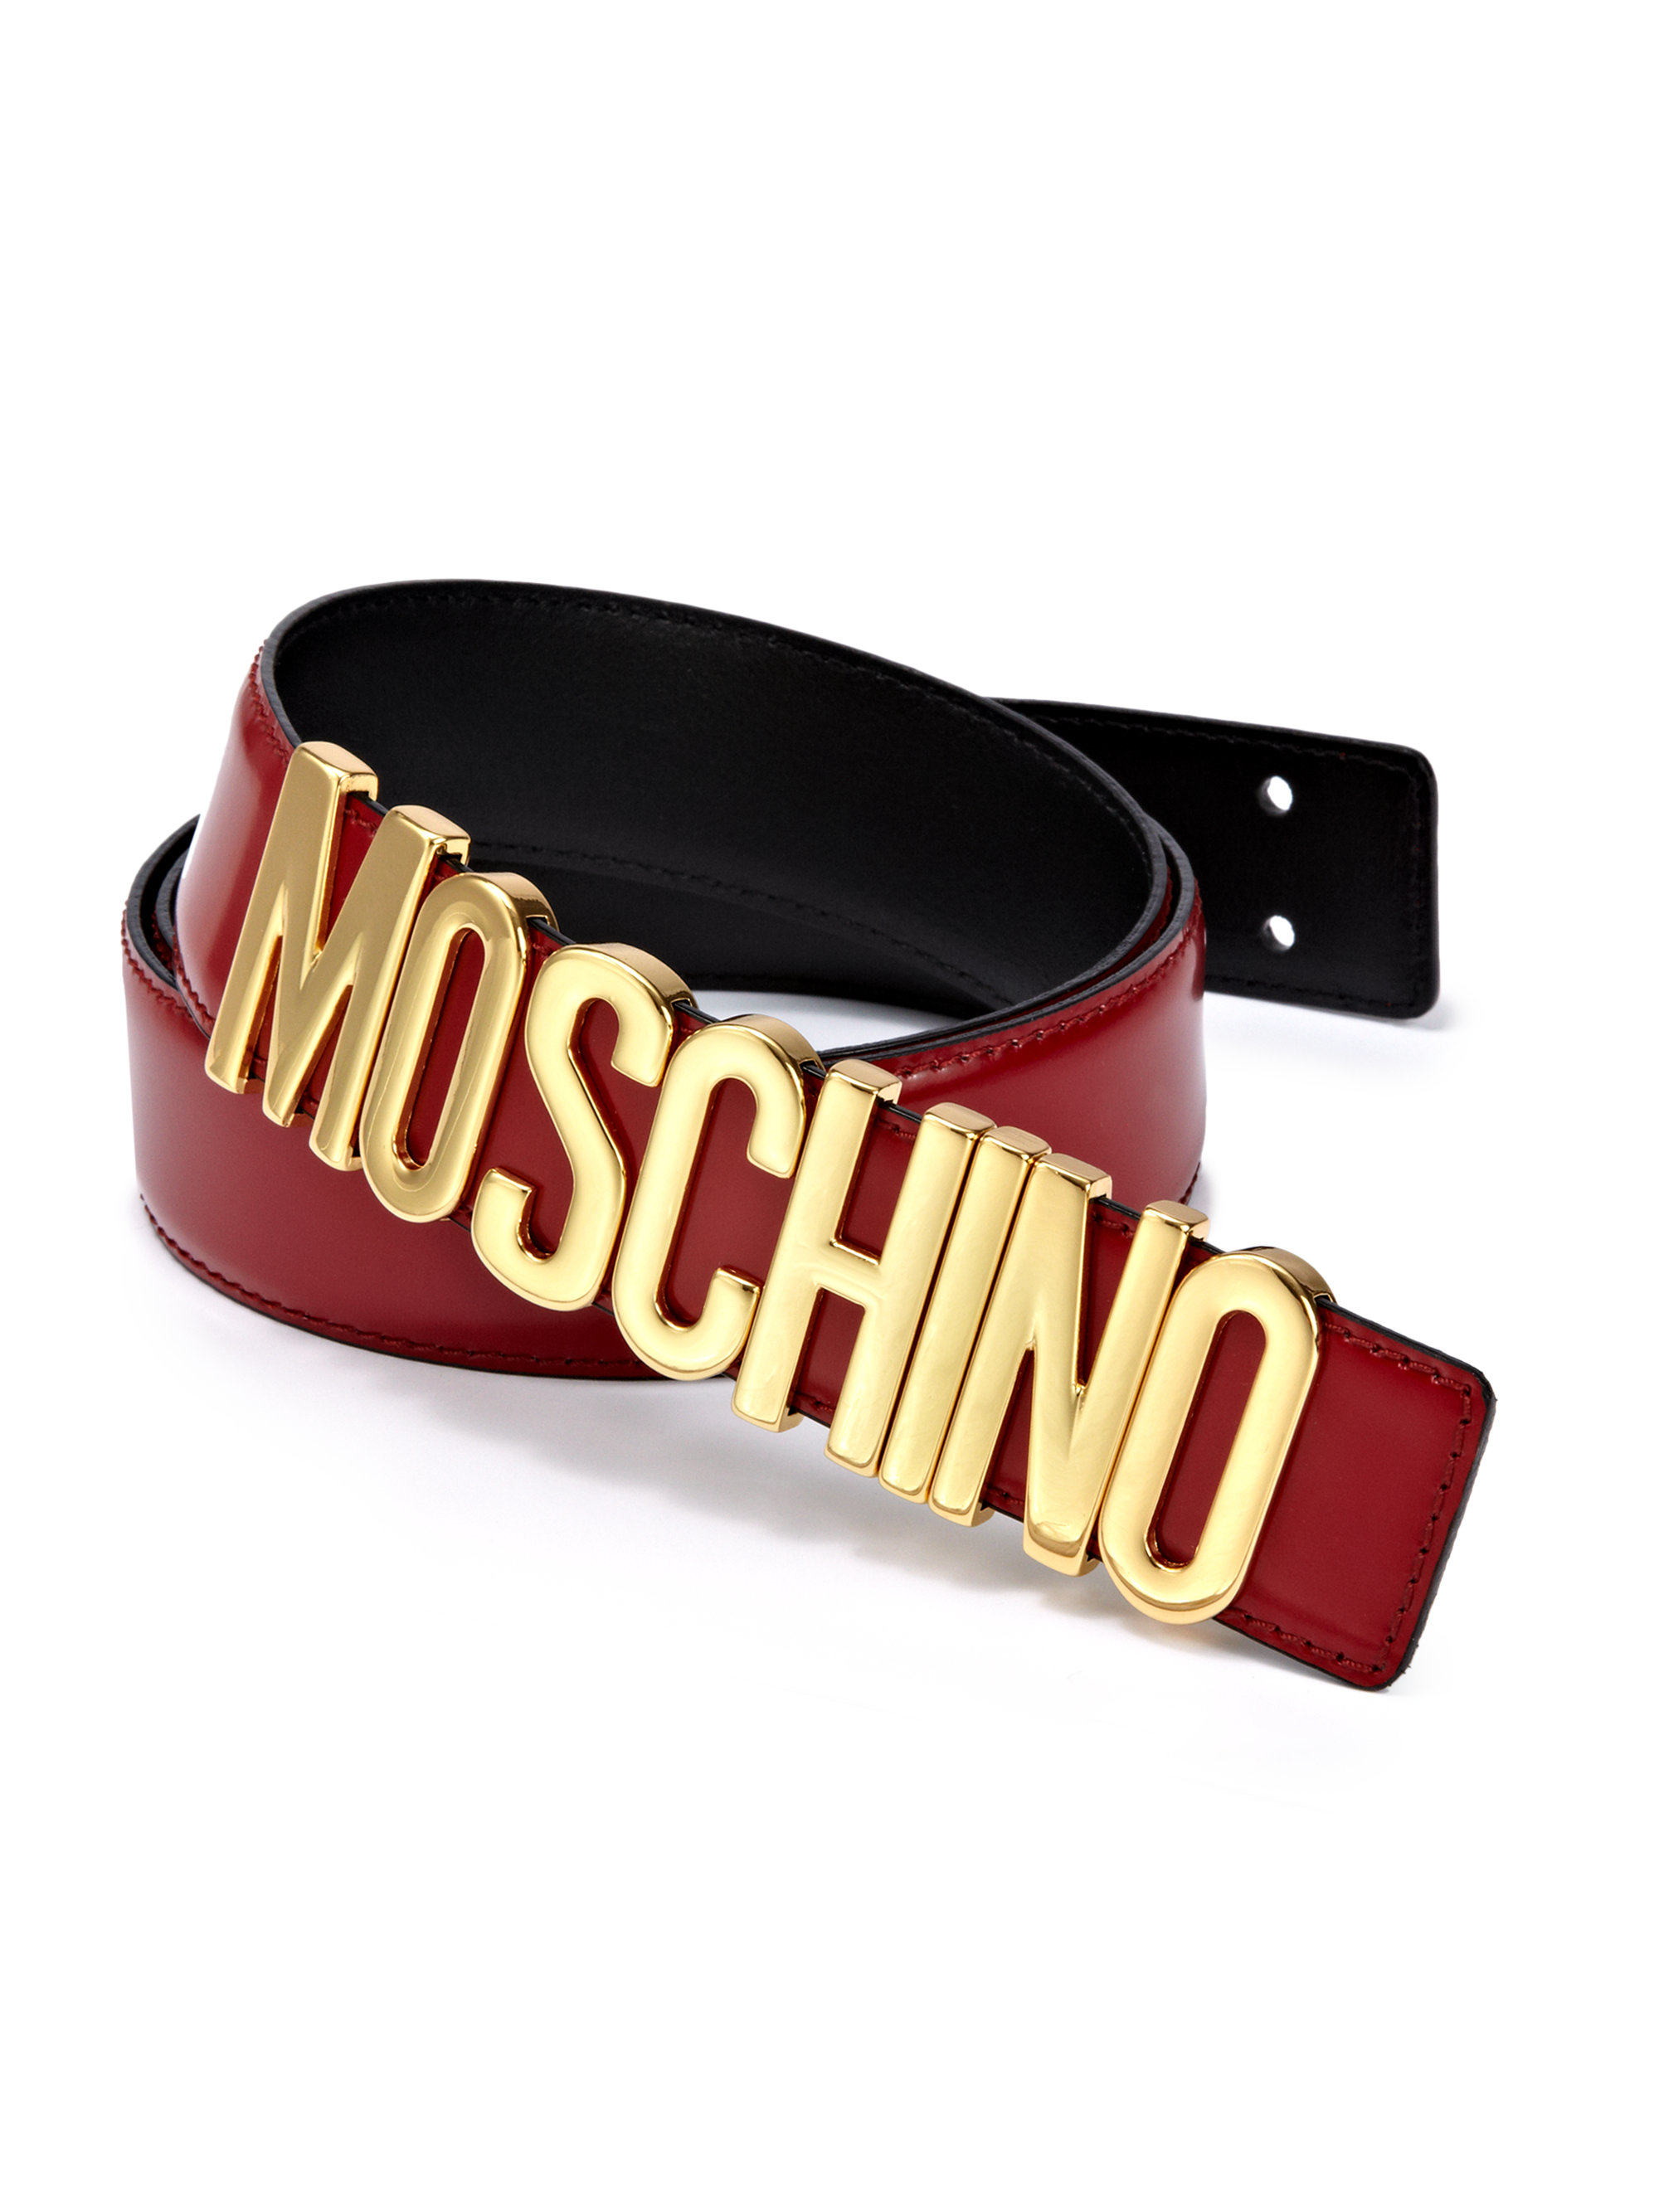 Moschino Shoes Mens Sale